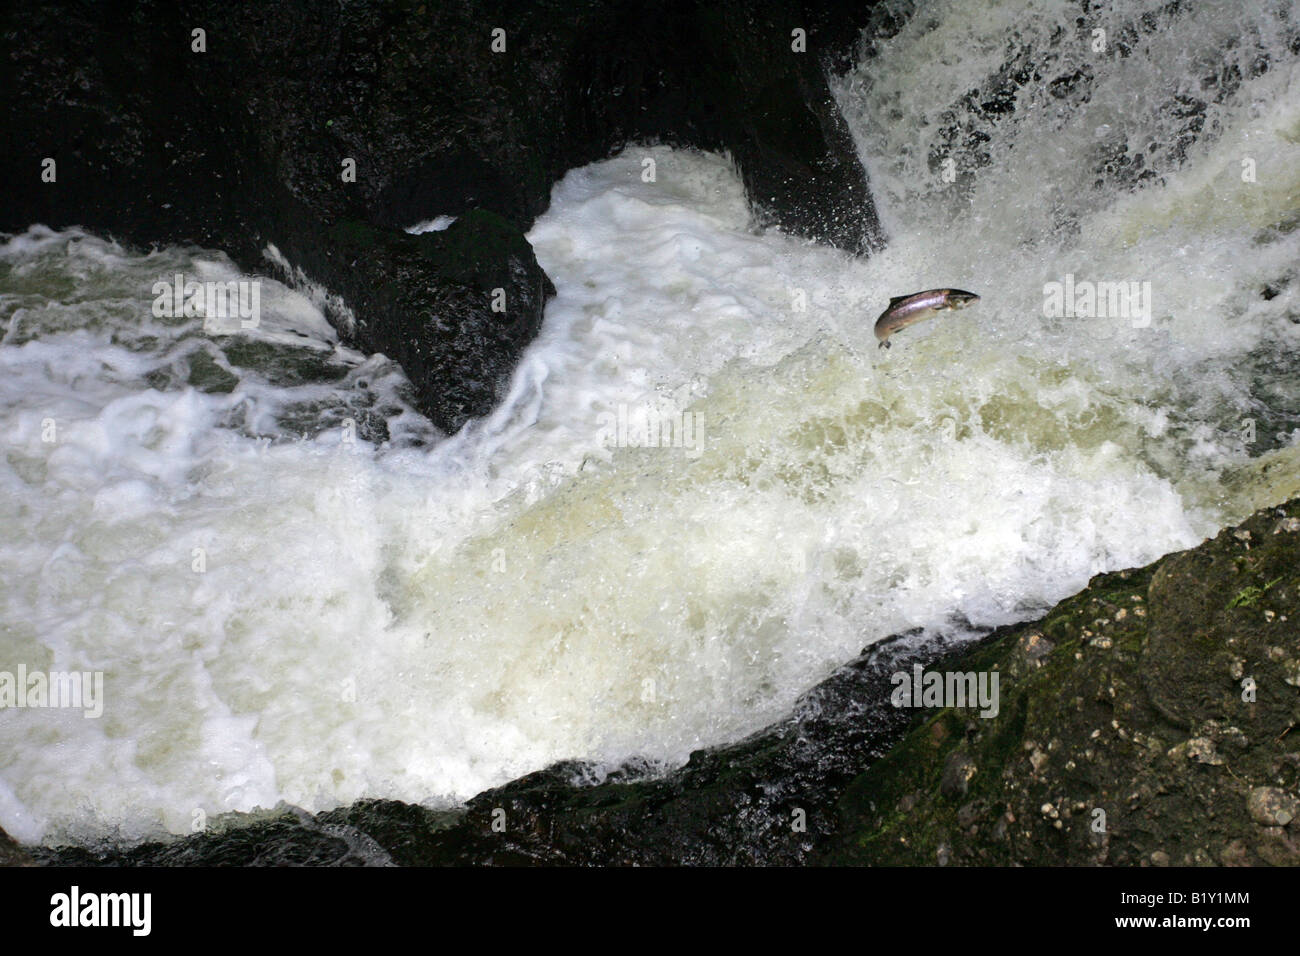 Salmon leaping up a waterfall on the fast flowing salmon fishing river North Esk near Gannochy, Angus, Scotland, - Stock Image